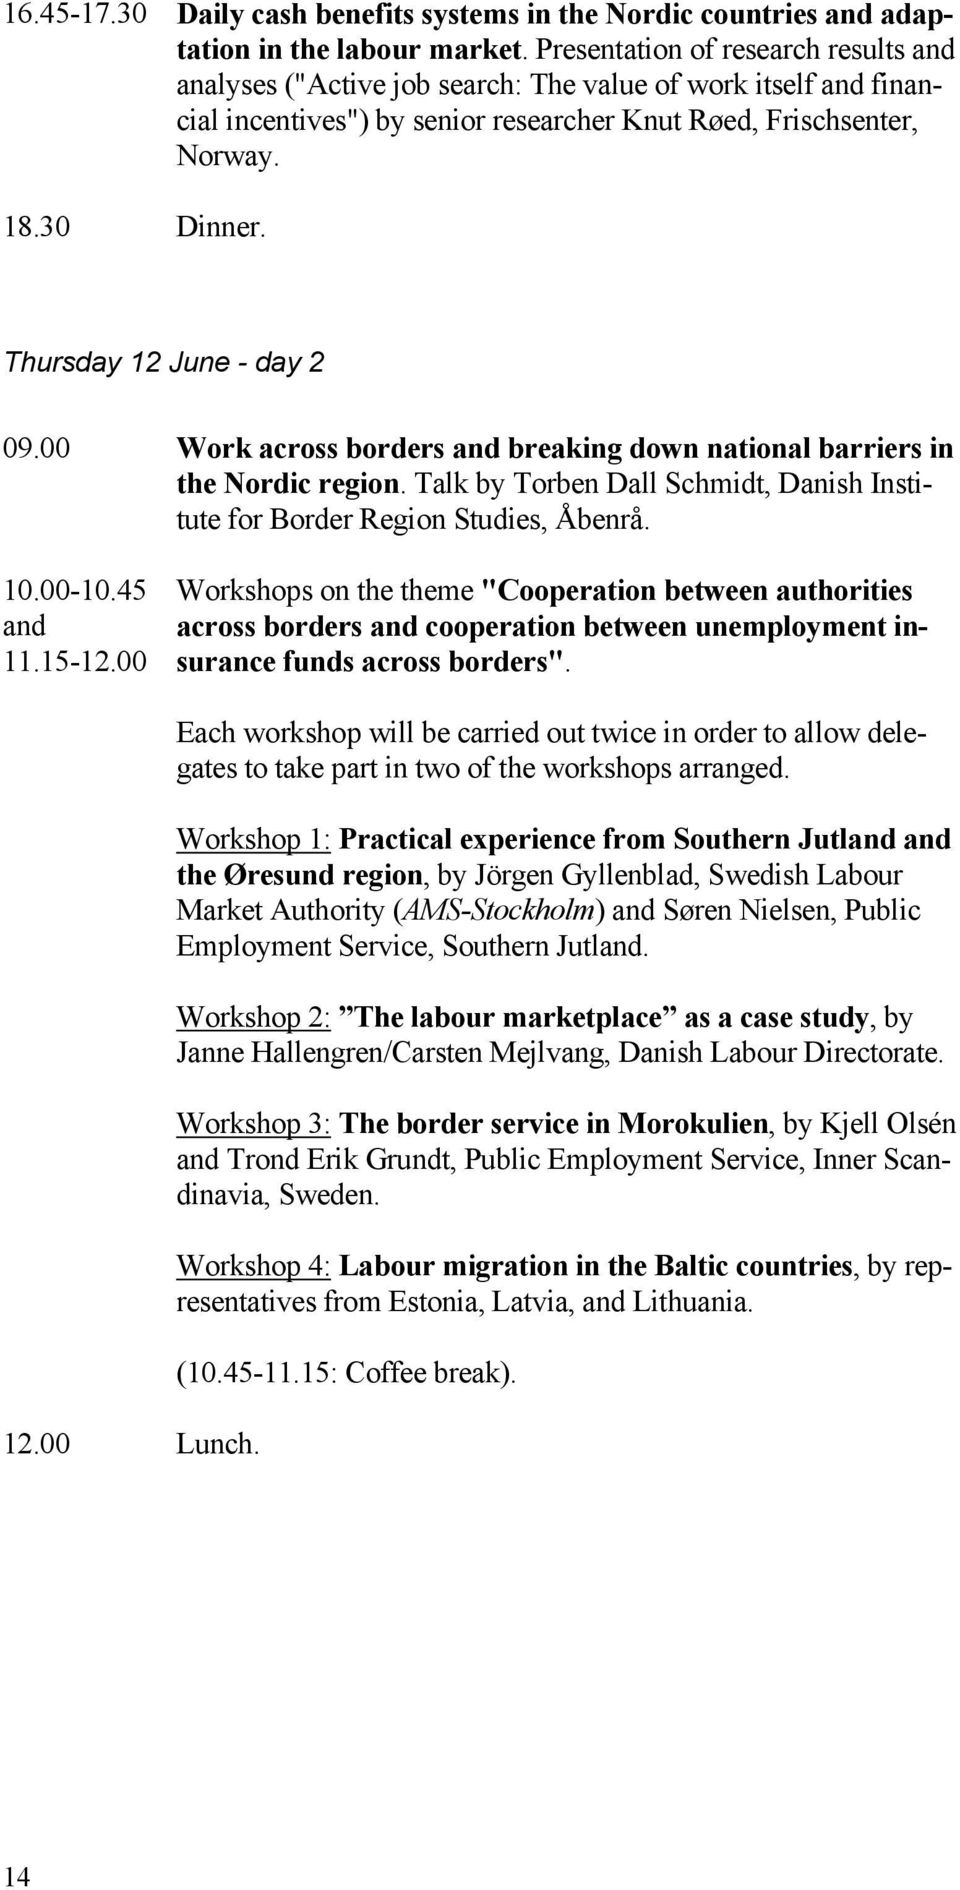 Thursday 12 June - day 2 09.00 Work across borders and breaking down national barriers in the Nordic region. Talk by Torben Dall Schmidt, Danish Institute for Border Region Studies, Åbenrå. 10.00-10.